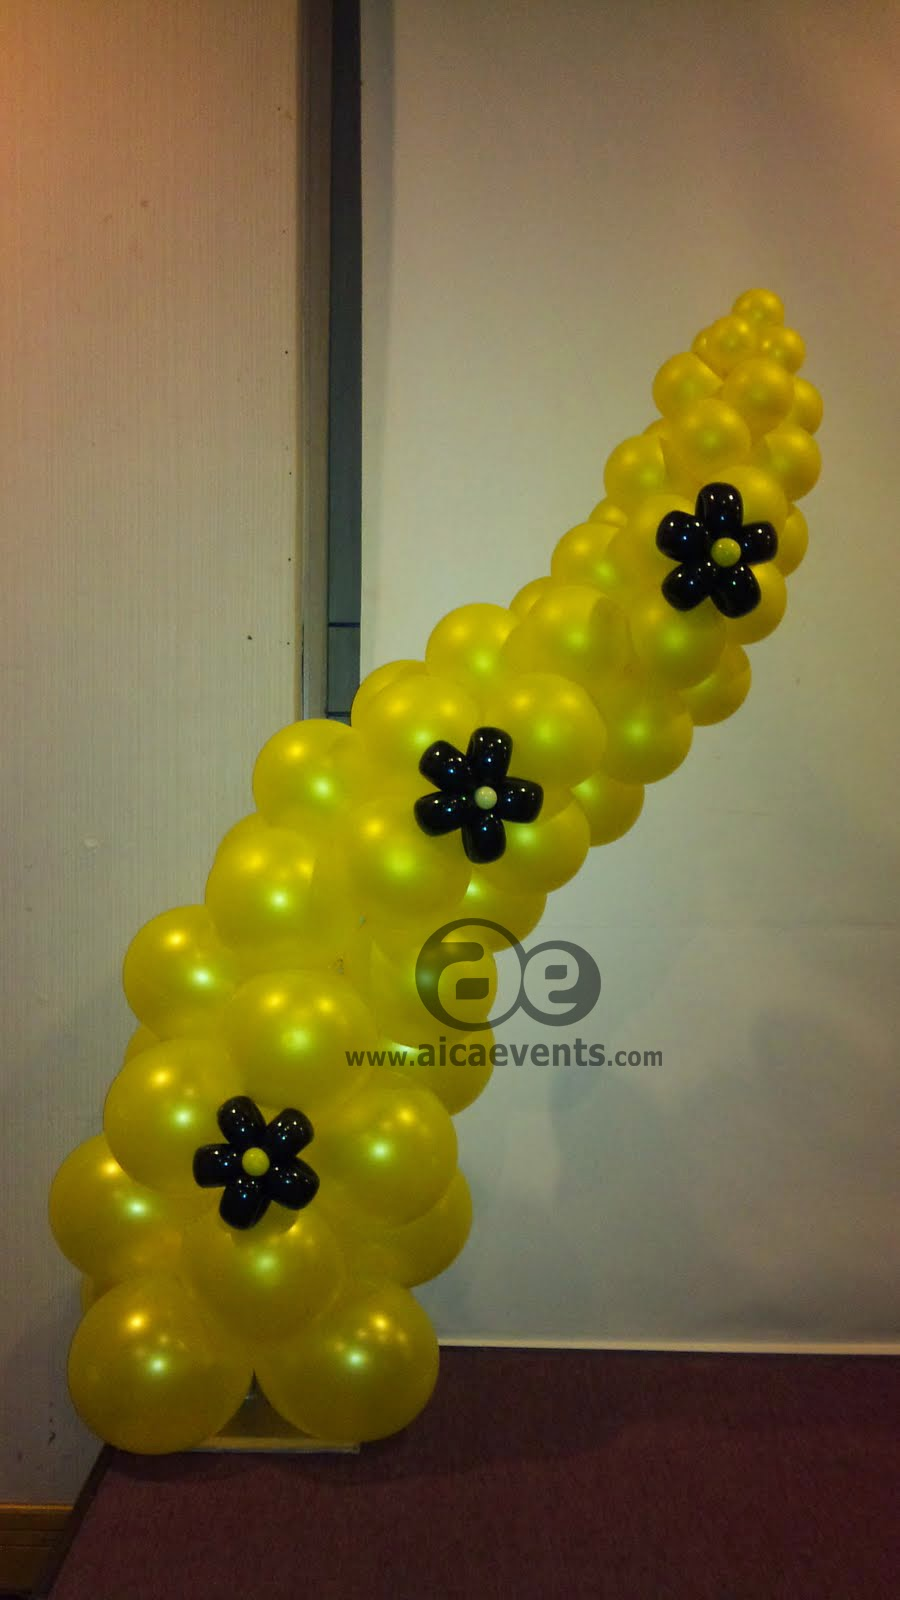 Aicaevents India: Balloon Decorations for parties